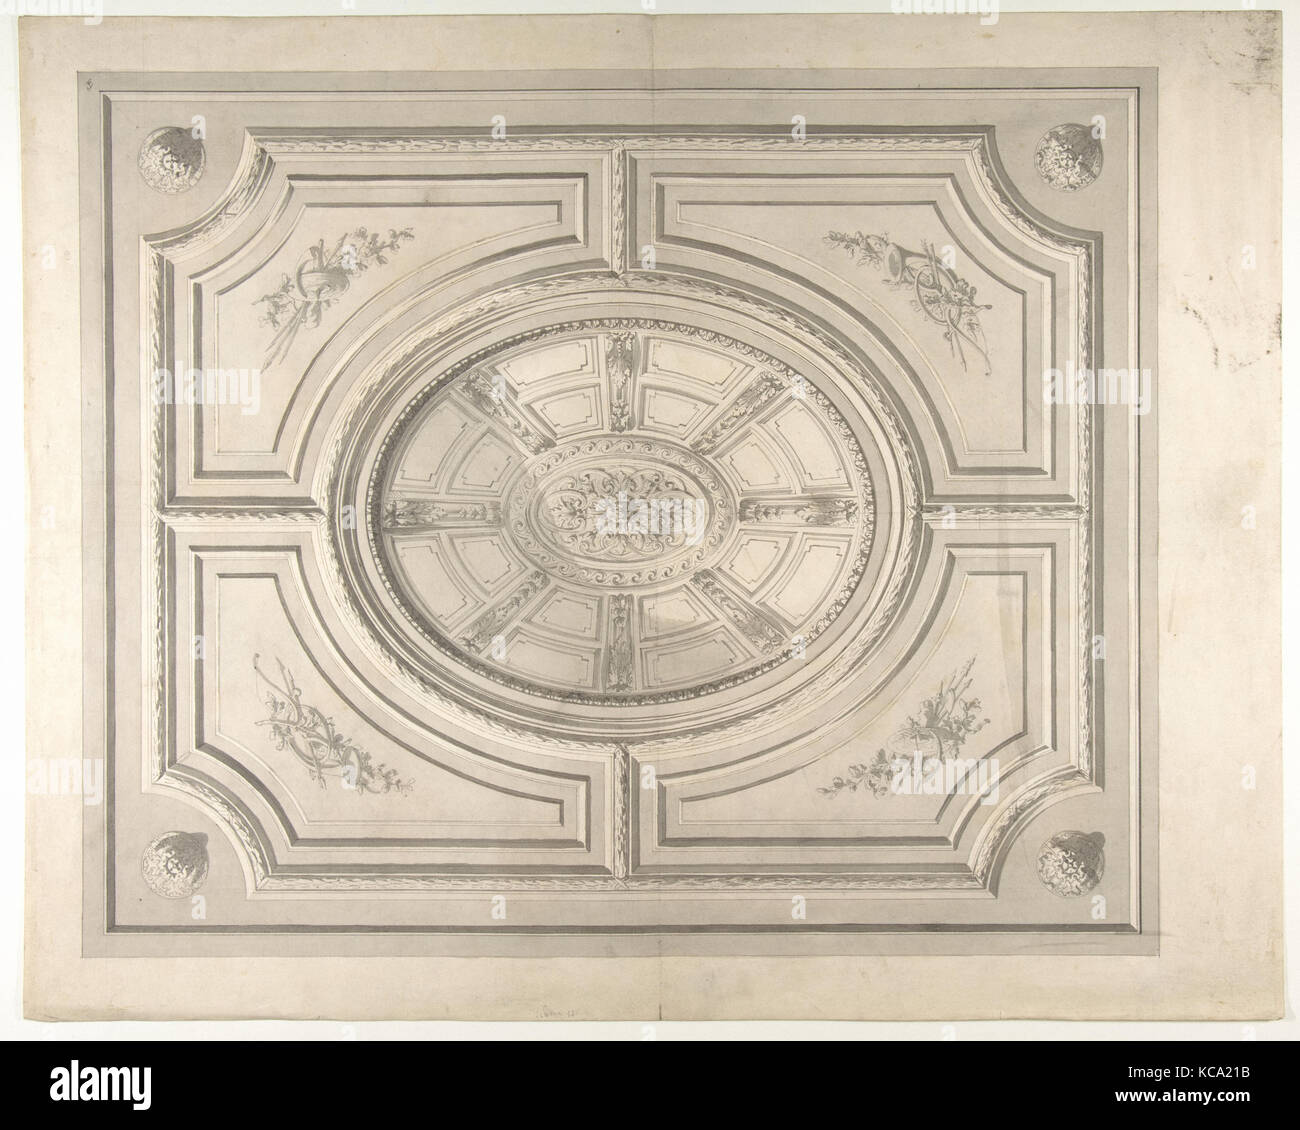 Design for a ceiling with trophies and a trompe l'oeil coffers, Jules-Edmond-Charles Lachaise, 1830–97 - Stock Image